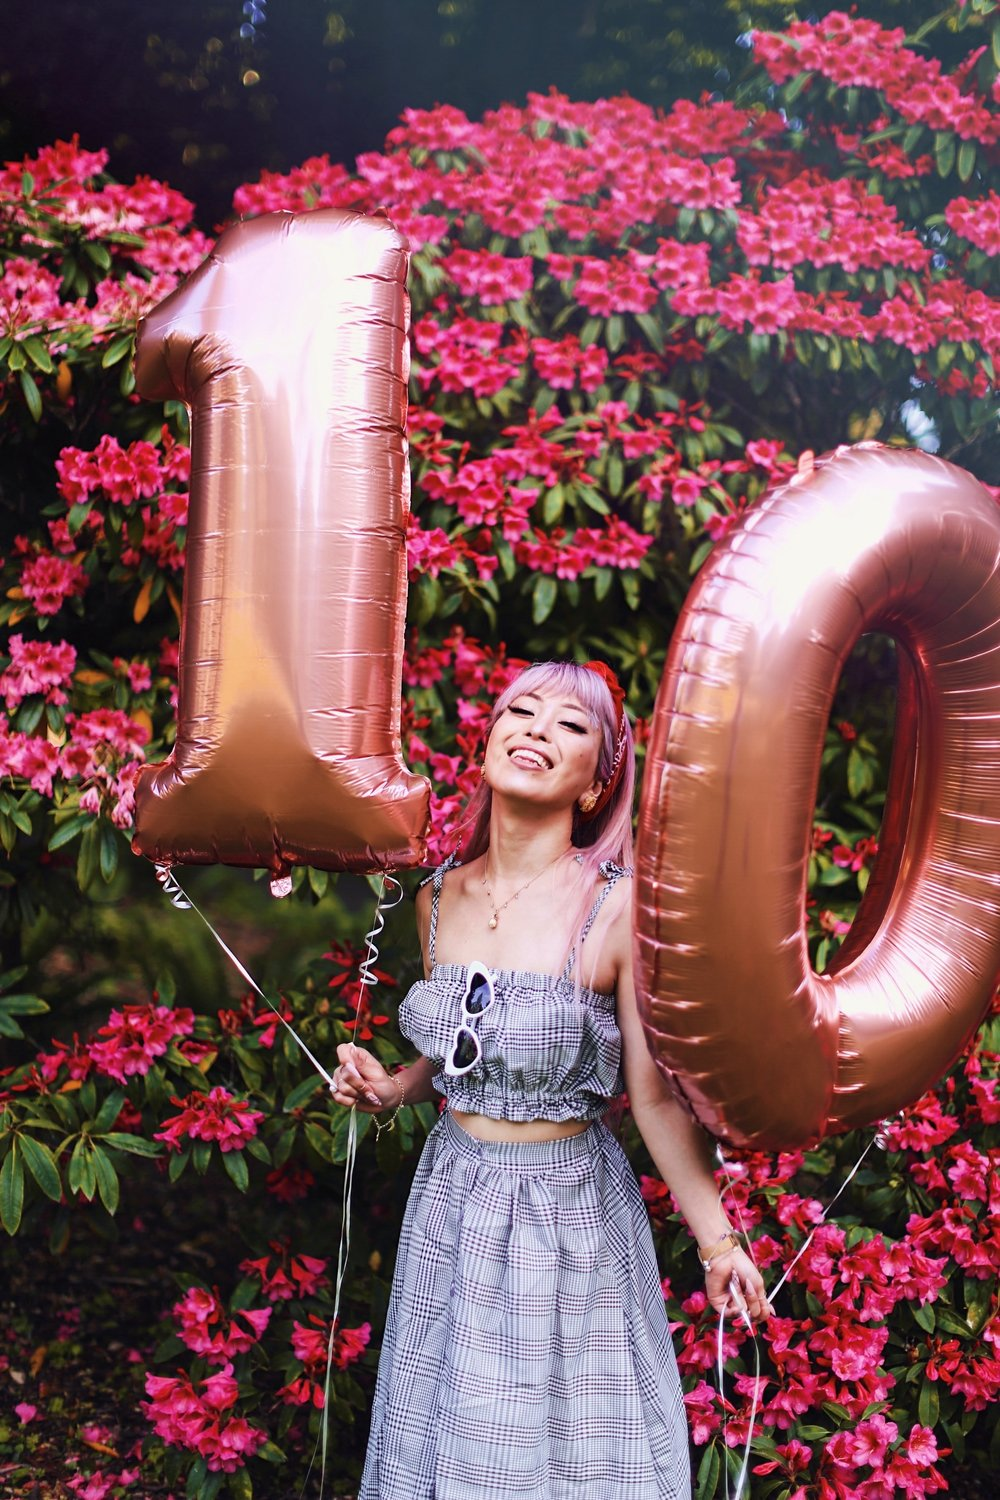 Aika's Love Closet-Seattle Style Life Style Blogger-Japanese-10 Year Anniversary-living in America-what I've learned from Living Abroad-life lessons-pink hair-zero uv heart sunglasses-rose gold balloons-smile 23